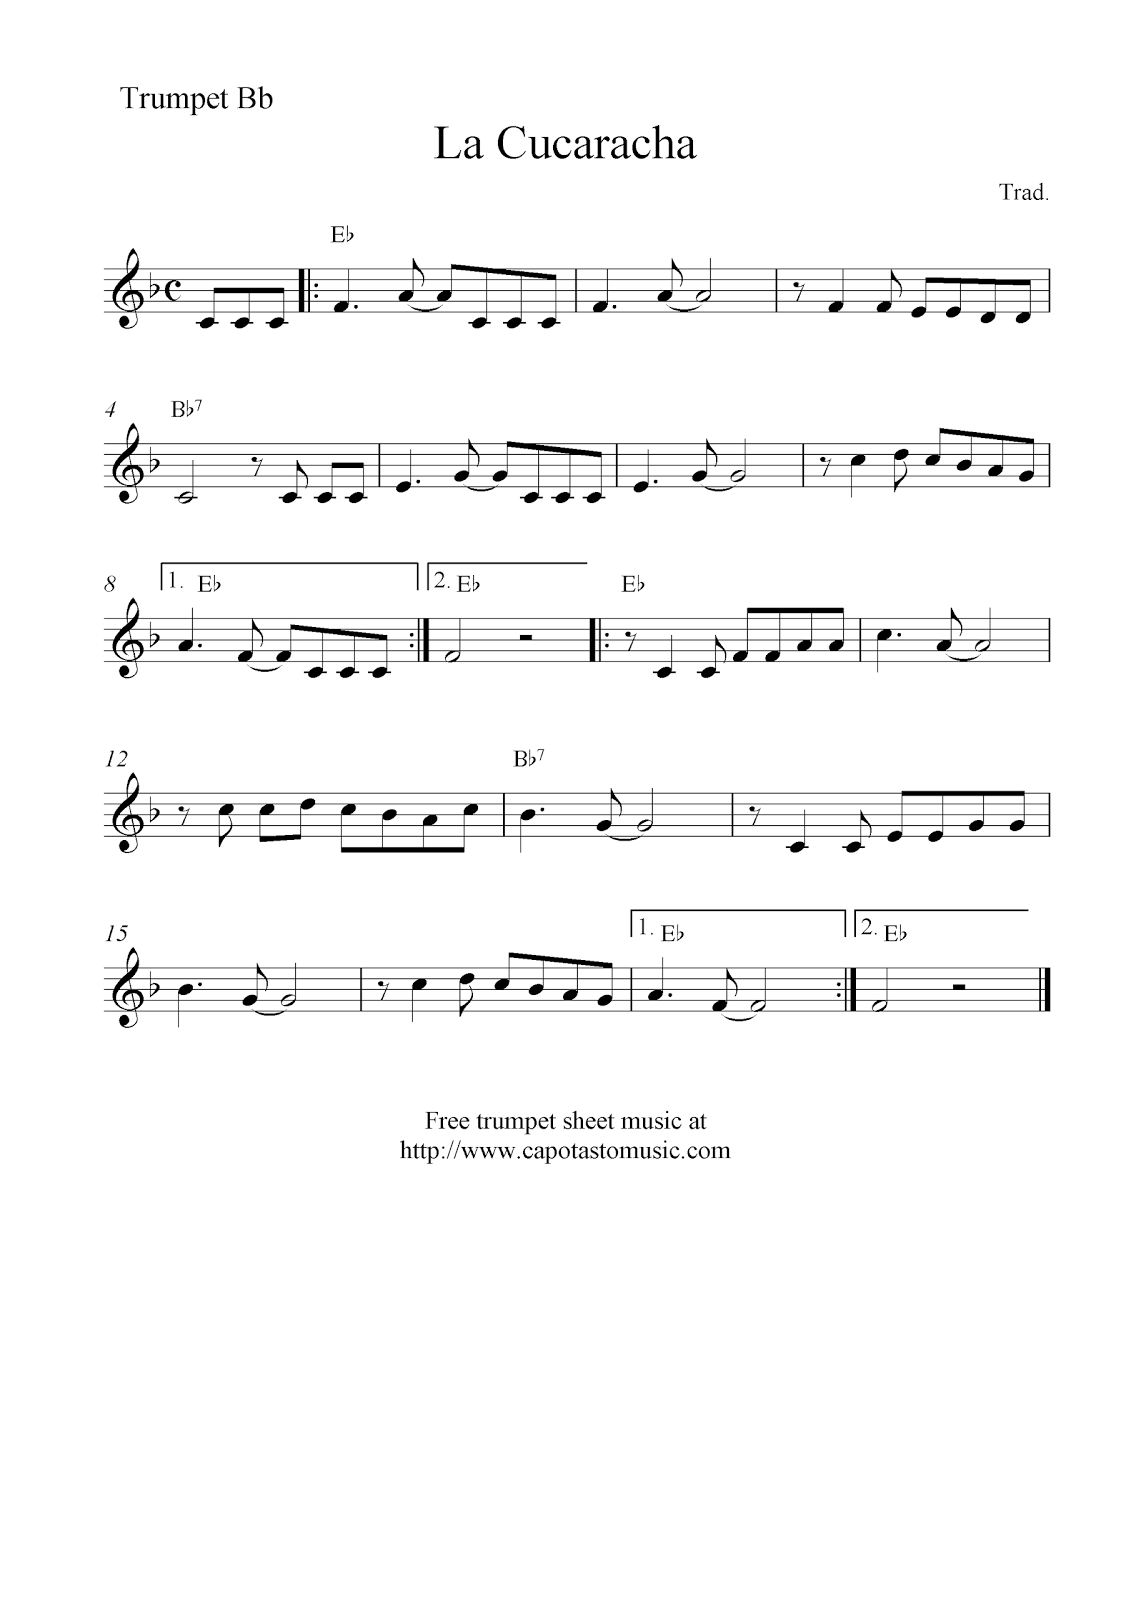 This is a photo of Impeccable Free Printable Sheet Music for Trumpet